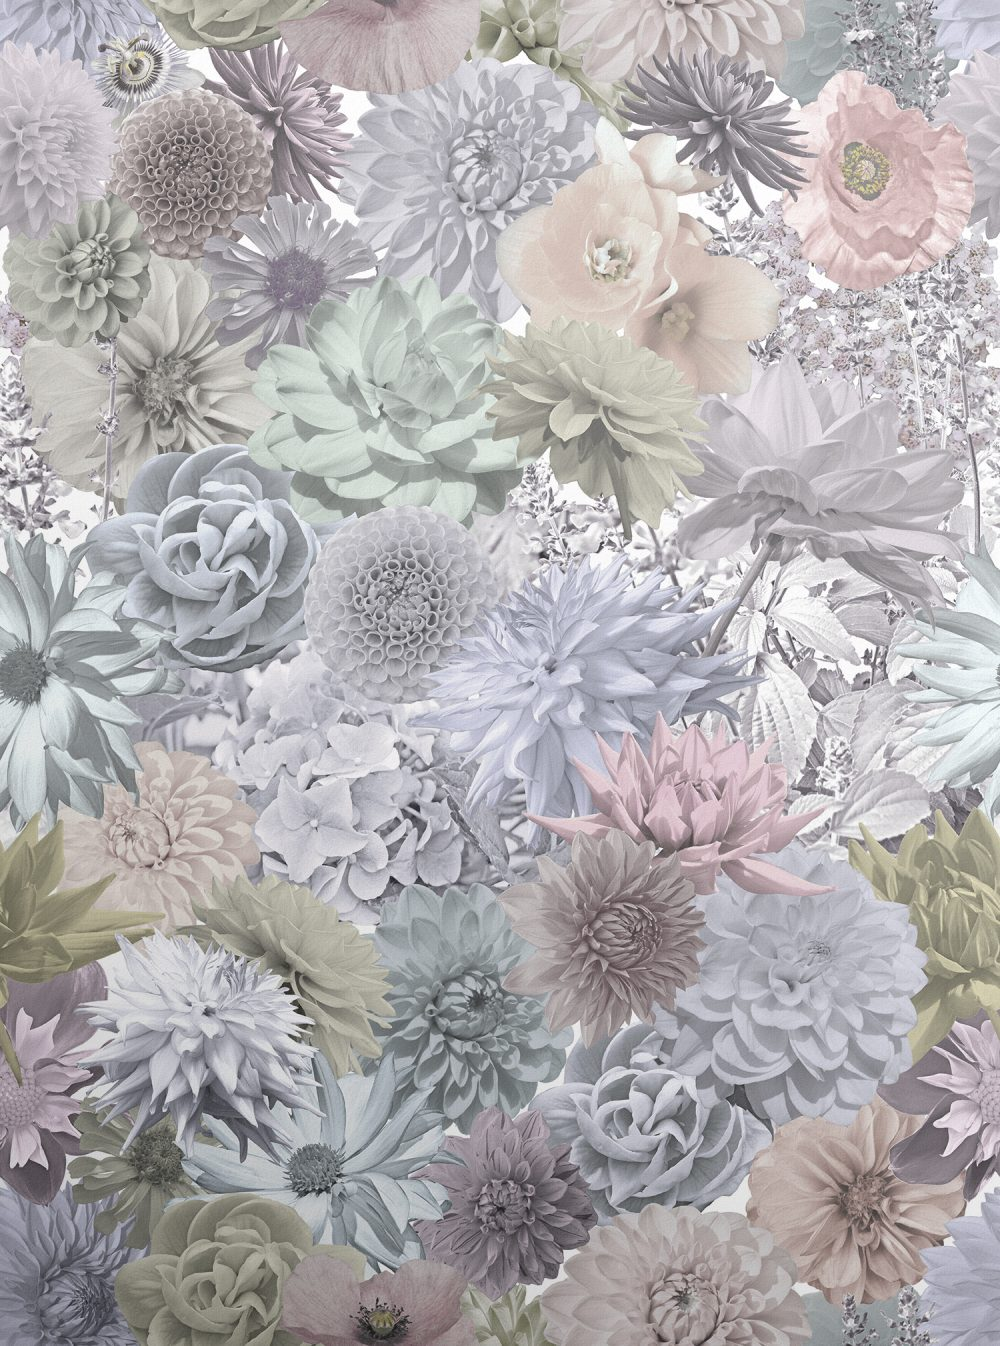 Floral Collage Wallpaper Photographed Pastel Flowers Surface House